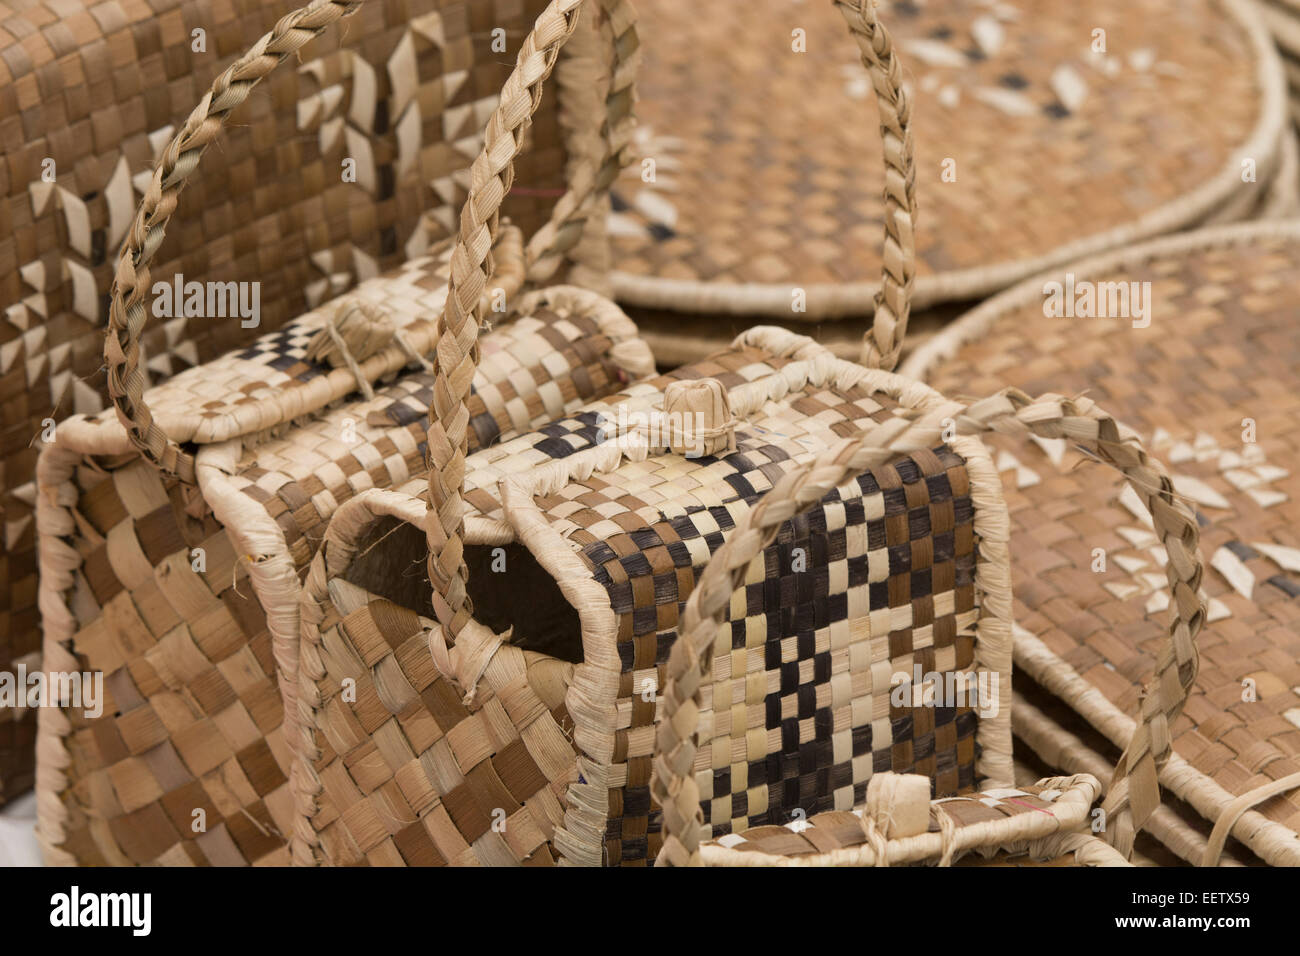 Kingdom of Tonga, Vava'u Islands, Neiafu. Hand woven palm souvenir bags. - Stock Image